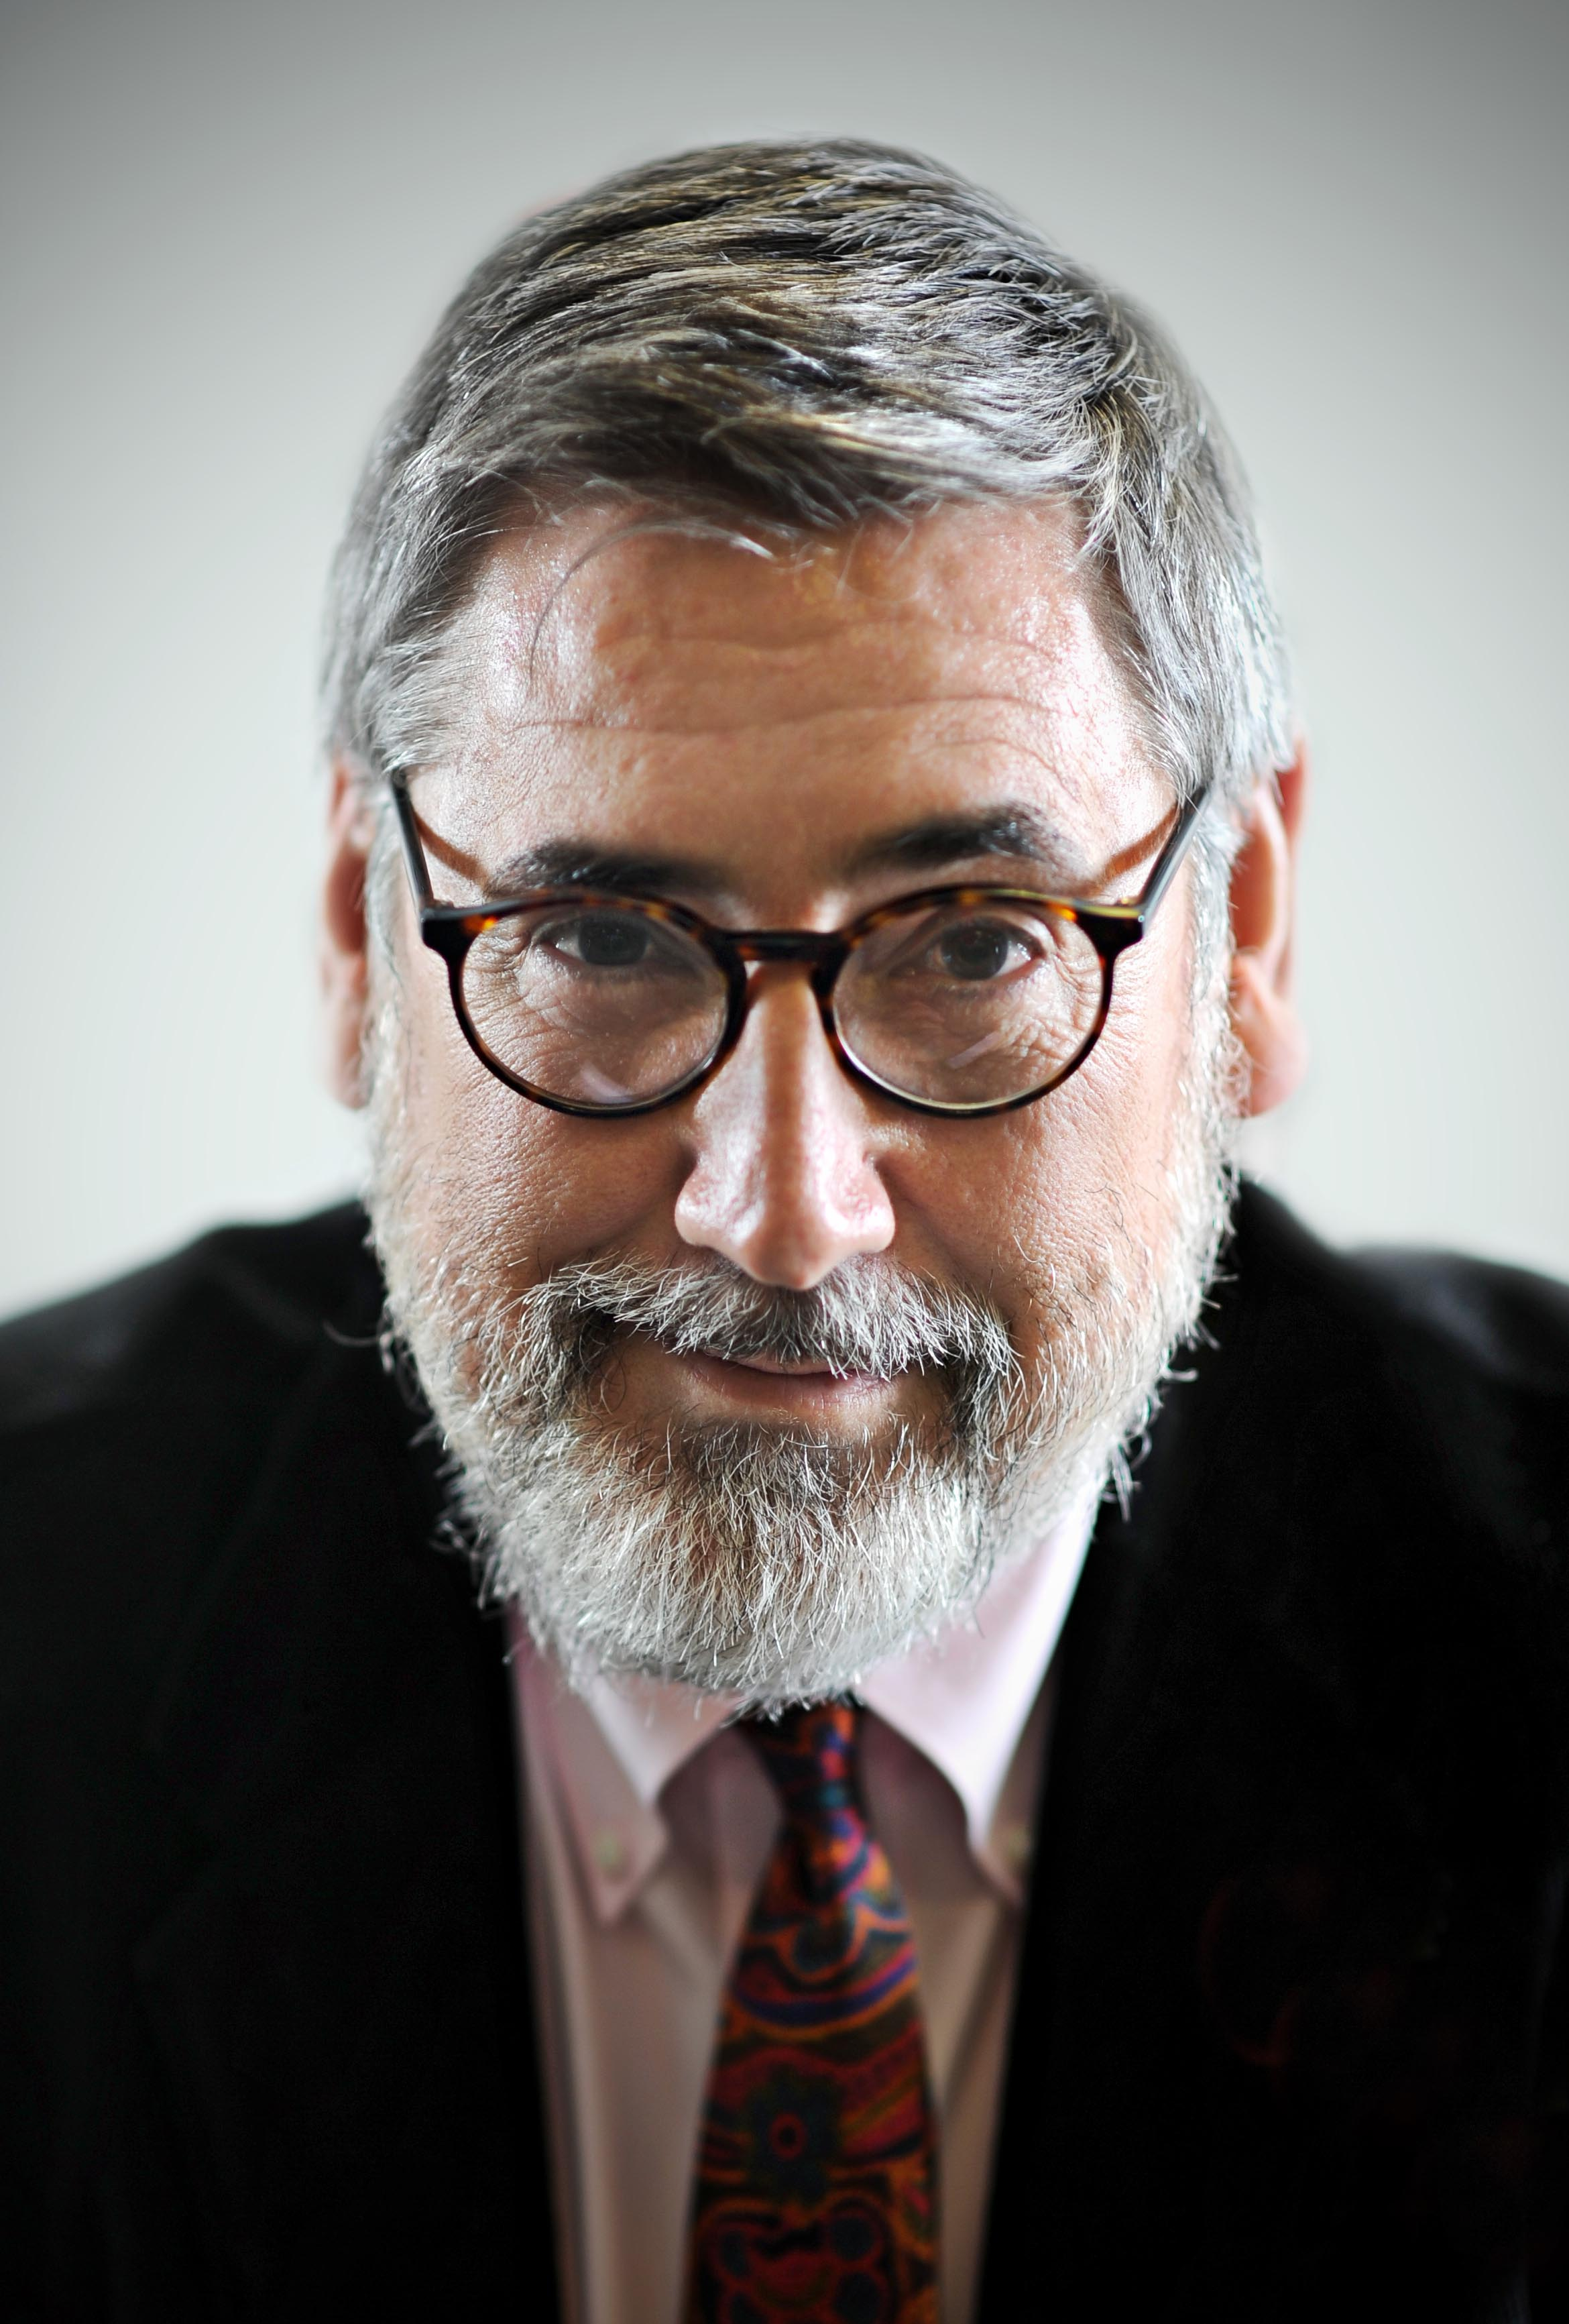 john landis twitterjohn landis movie, john landis wiki, john landis michael jackson, john landis director, john landis mason, john landis leonard maltin, john landis monsters in the movies pdf, john landis twitter, john landis instagram, john landis brother nathanael, john landis, john landis imdb, john landis twilight zone, john landis wikipedia, john landis interview, john landis blues brothers, john landis favorite movies, john landis net worth, john landis accident, john landis star wars